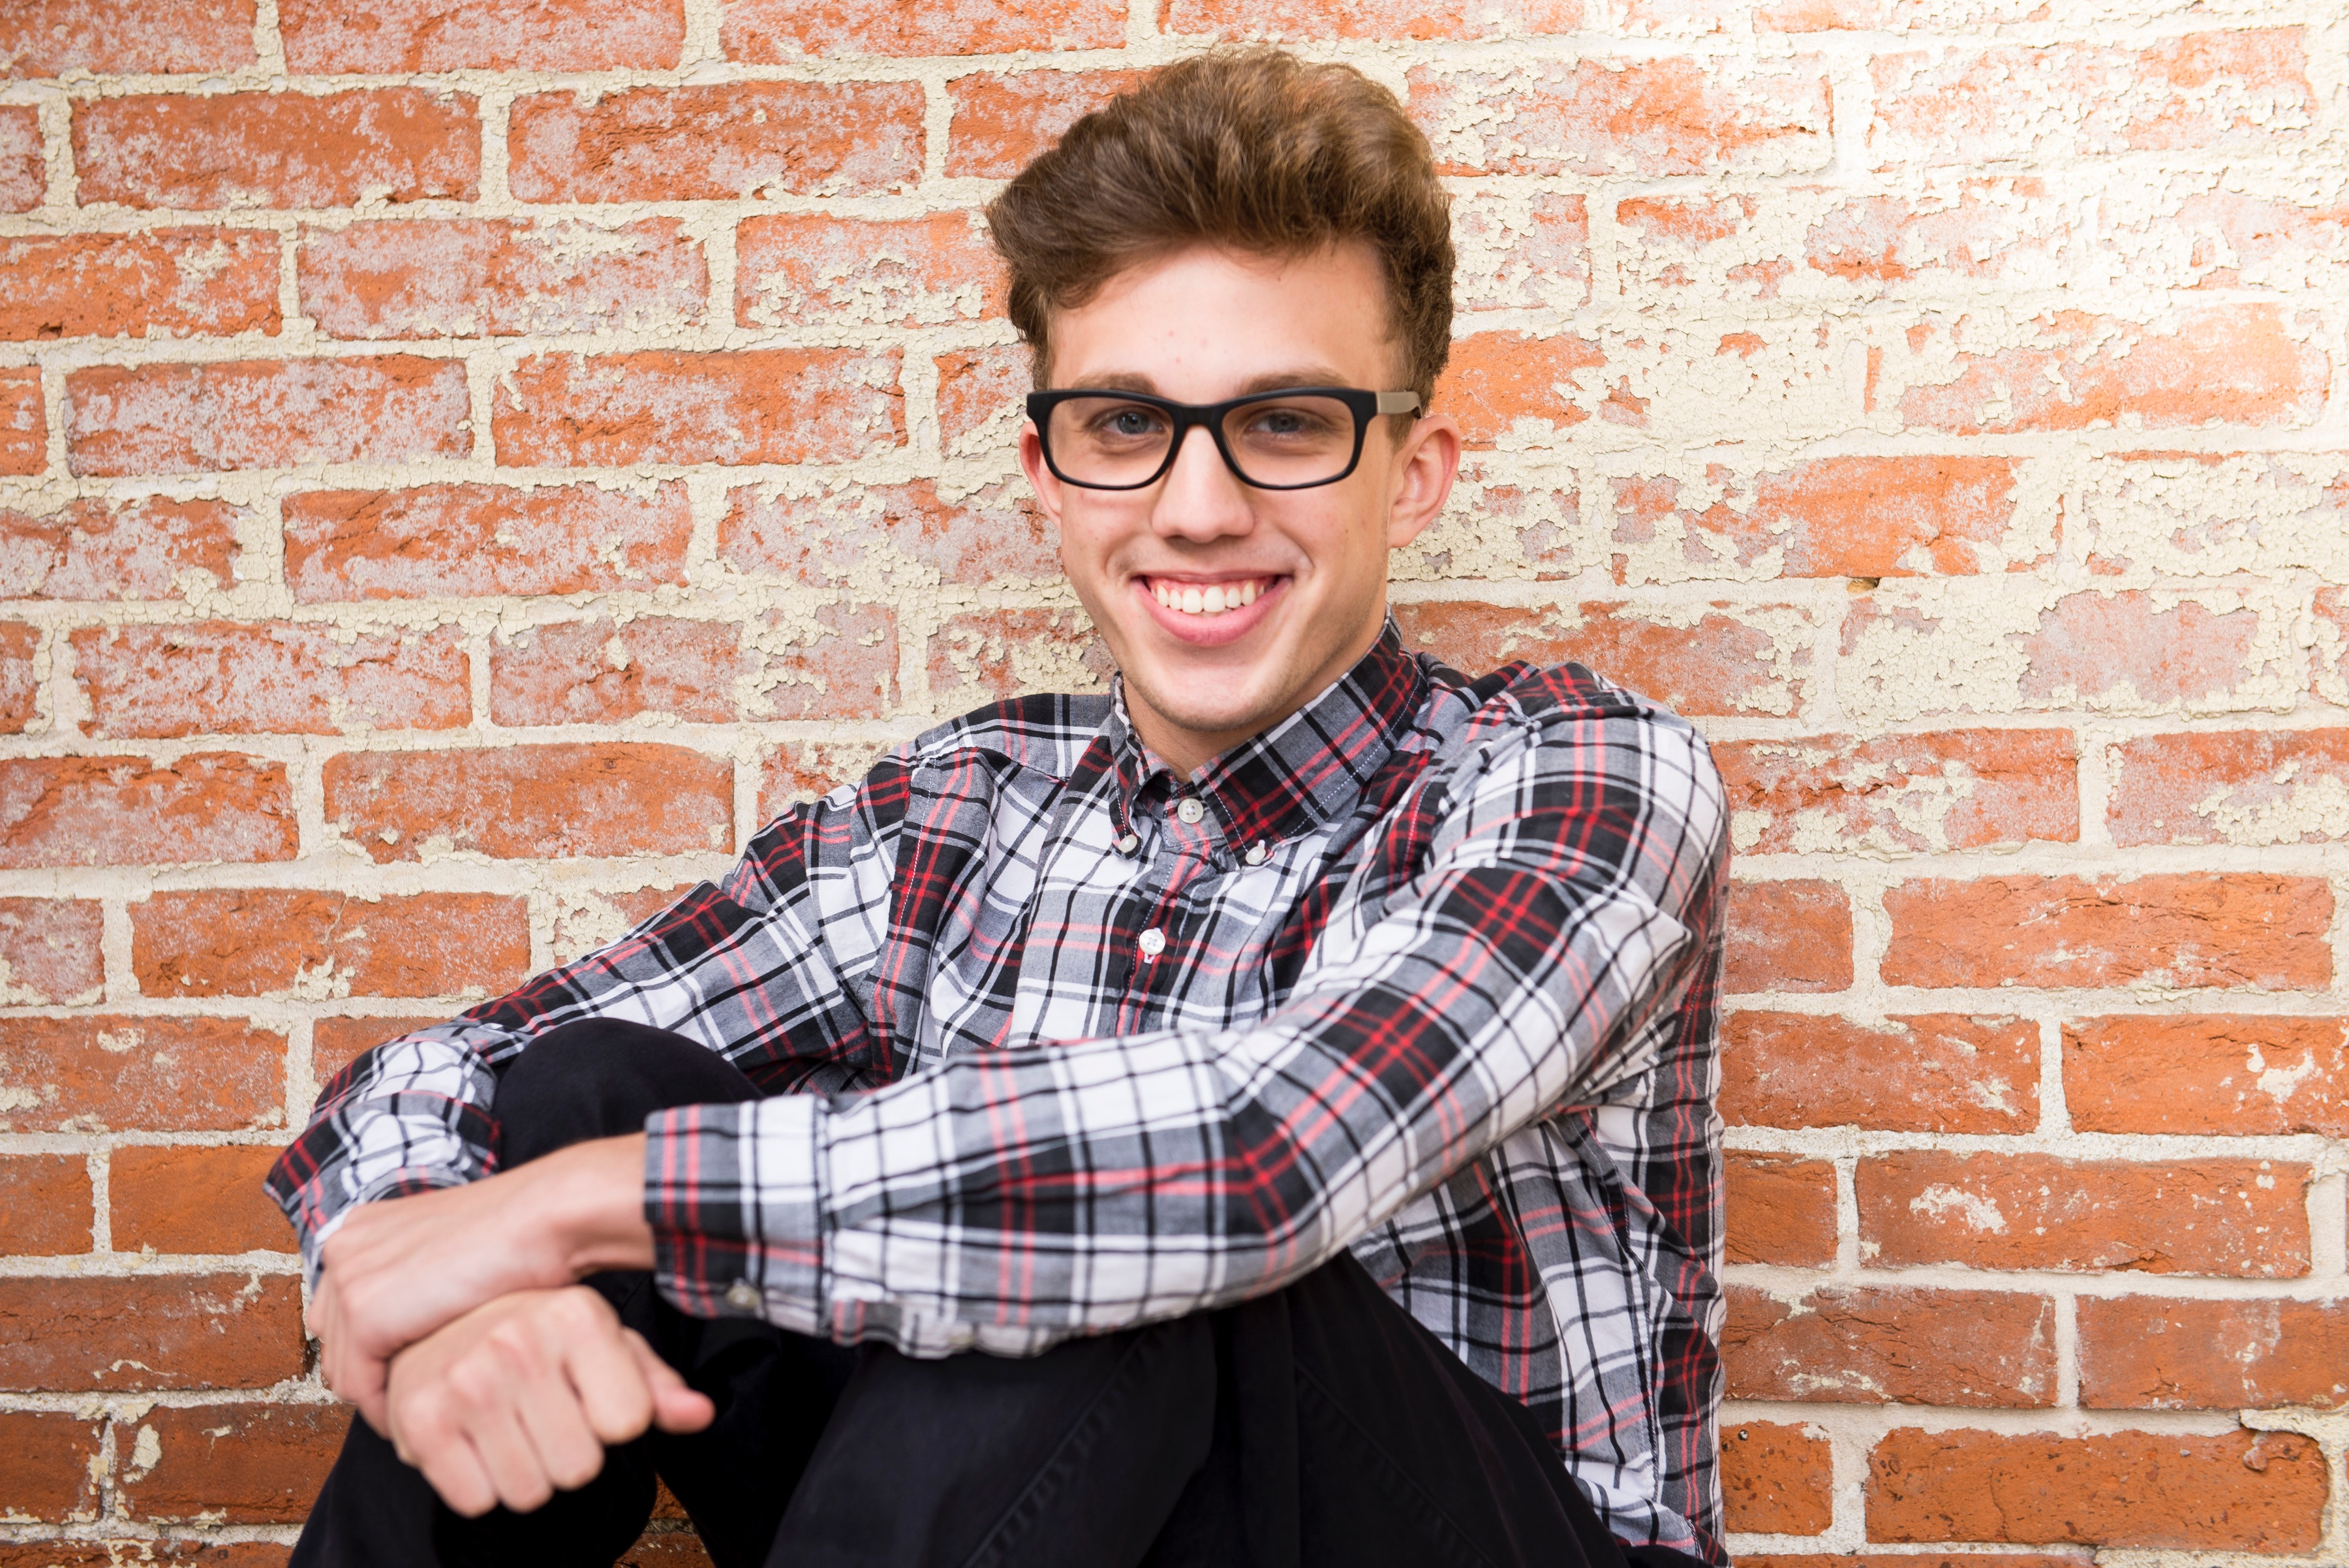 Man Wearing Plaid Dress Shirt And Black Pants Sitting Near Brown Brick Wall, Boy, Portrait, Young, Wear, HQ Photo